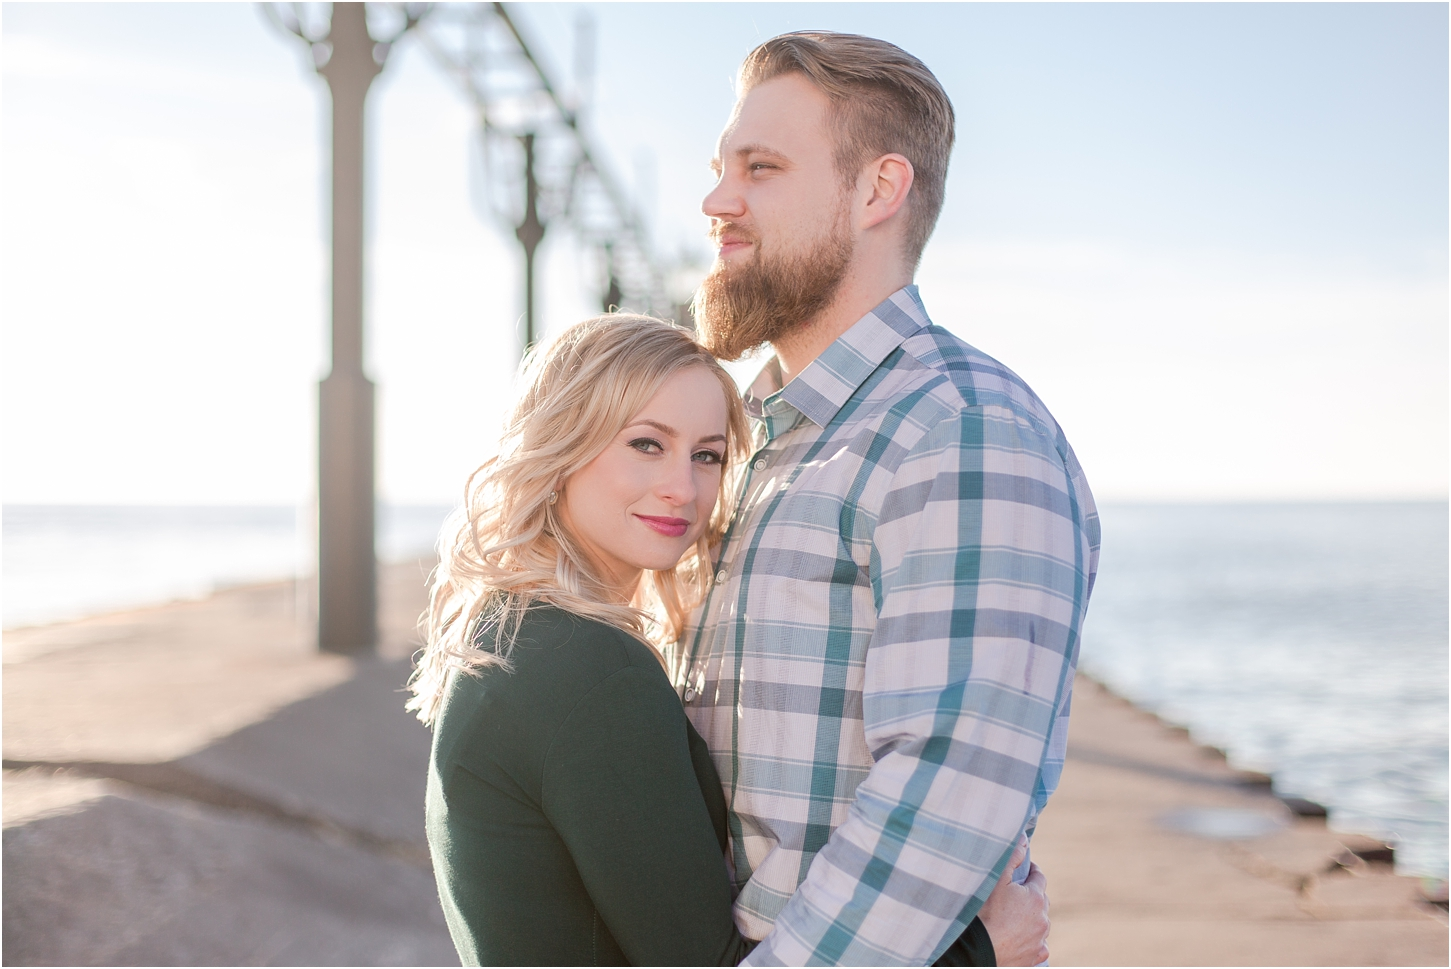 romantic-sunset-beach-engagement-photos-at-silver-beach-in-saint-joseph-mi-by-courtney-carolyn-photography_0006.jpg